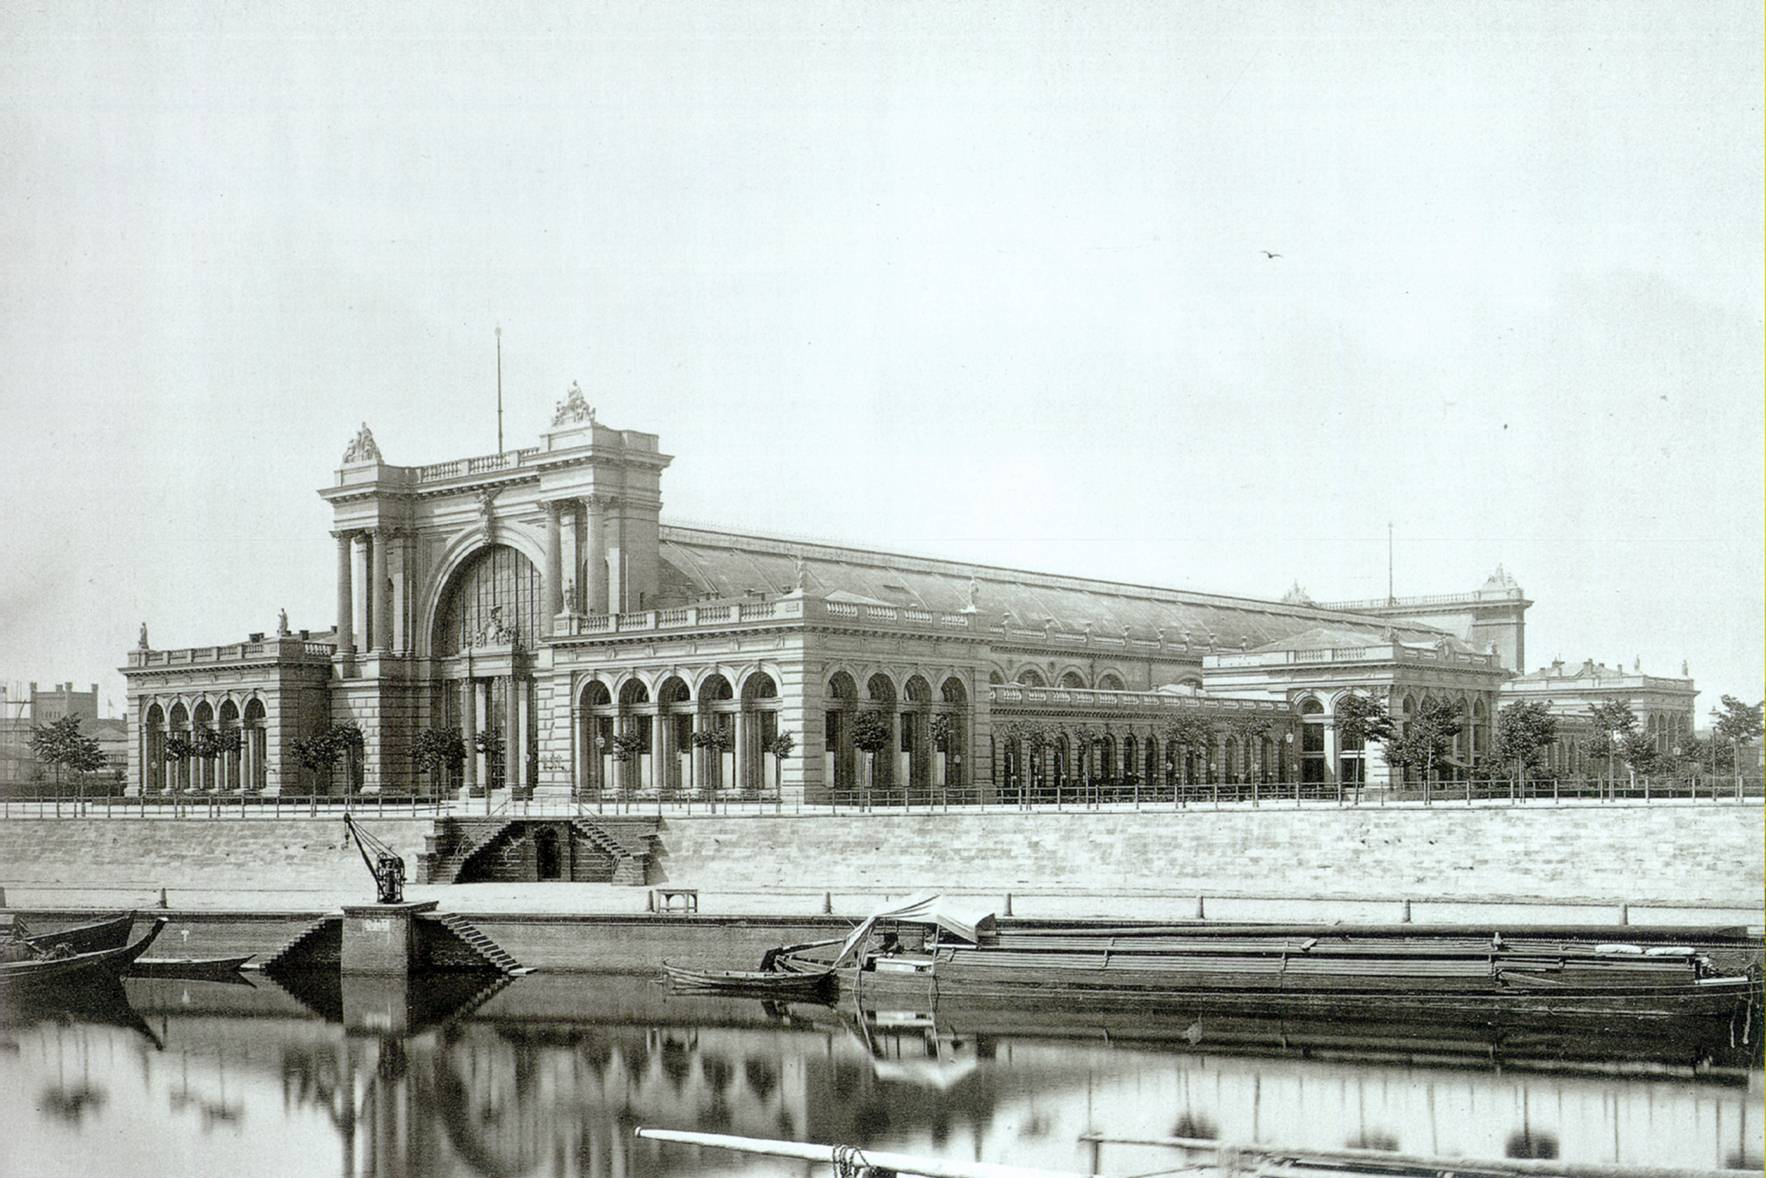 the 1879 Lehrter station, where the new station stands; the historic station was heavily damaged in the war (photo credit: Von Hermann Rückwardt)